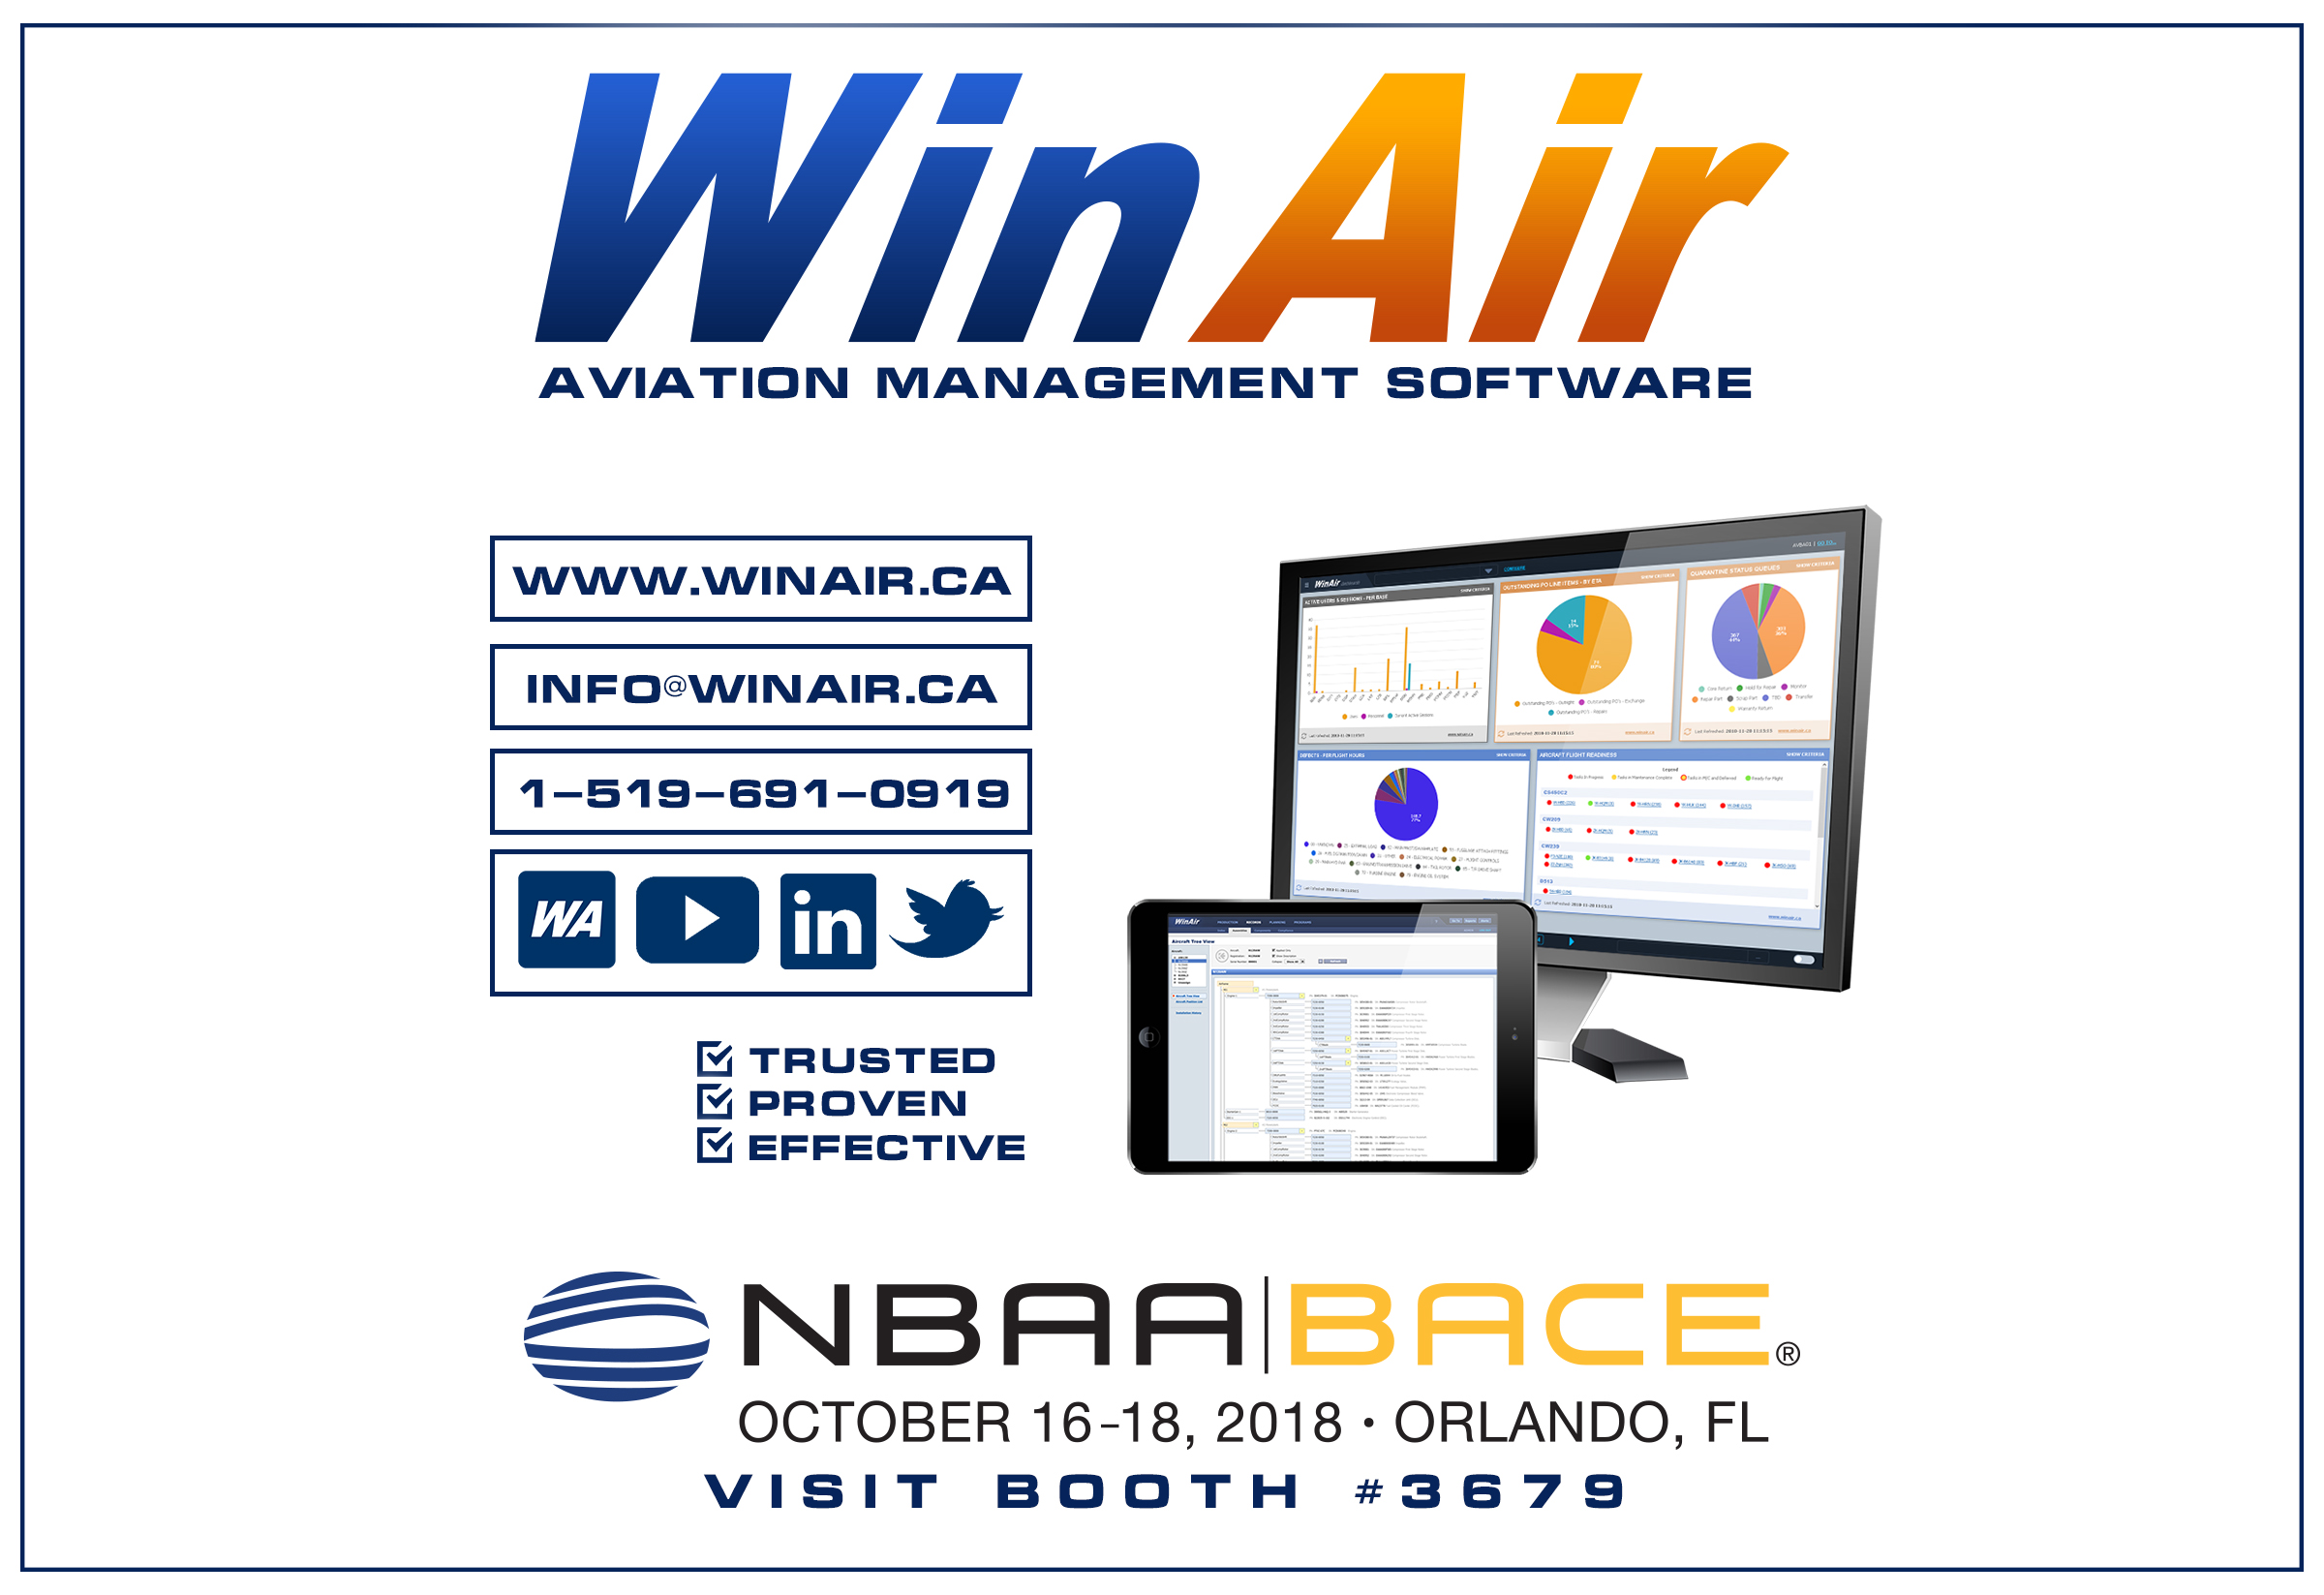 WinAir - Aviation Management Software - NBAA 2018 Promotional Image - Booth 3679